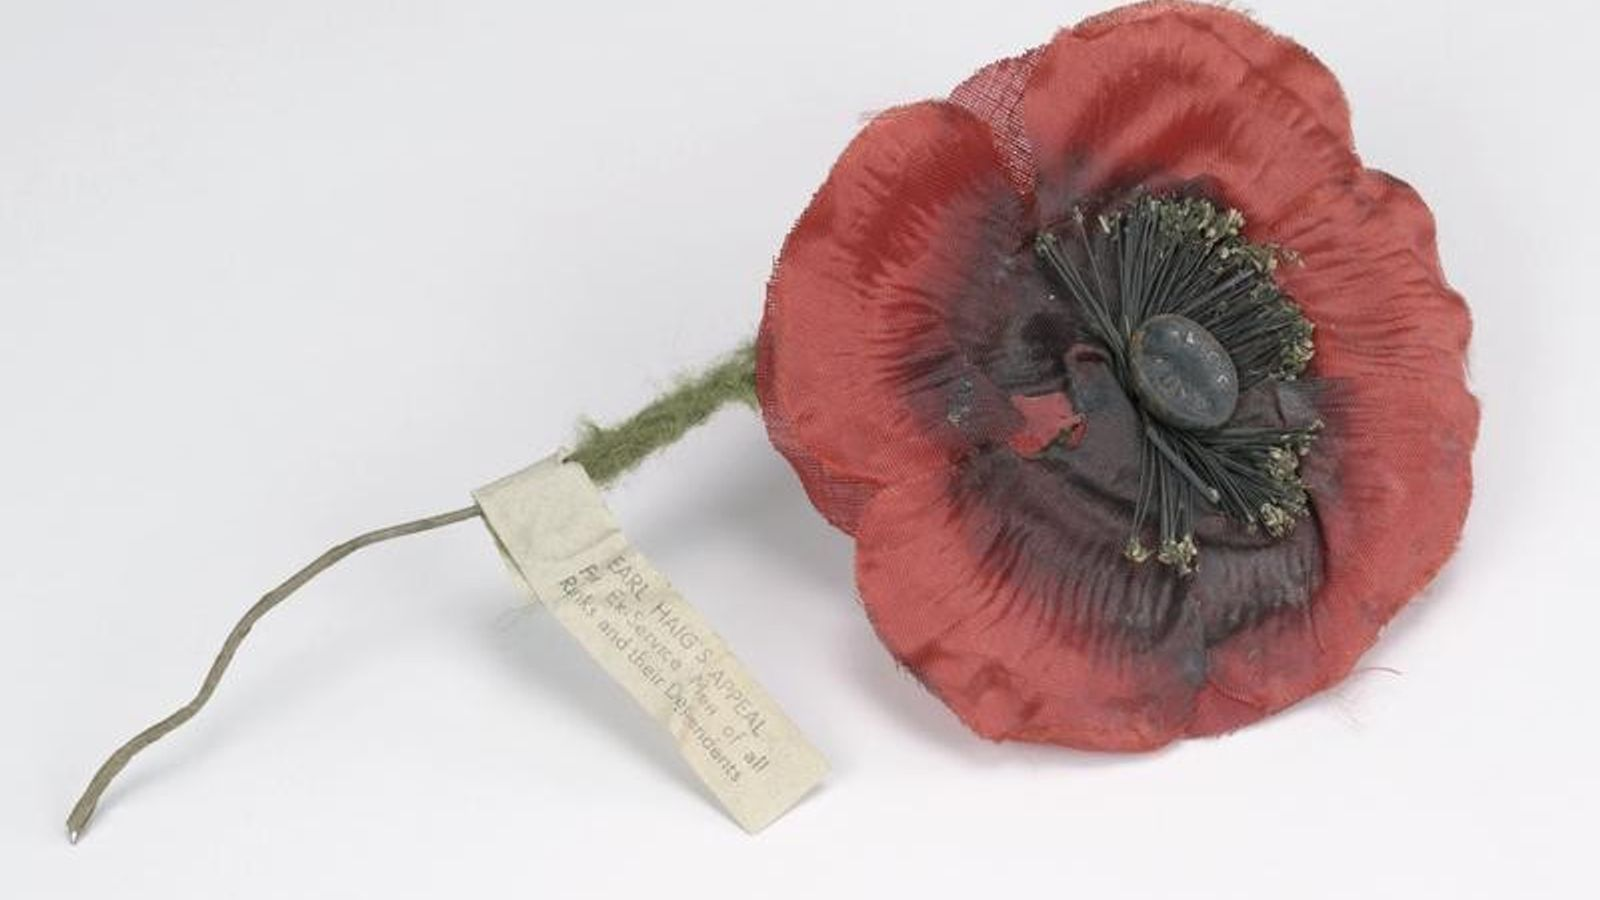 This British 'Remembrance Day' poppy from the interwar period was made of cloth strengthened with wire ...